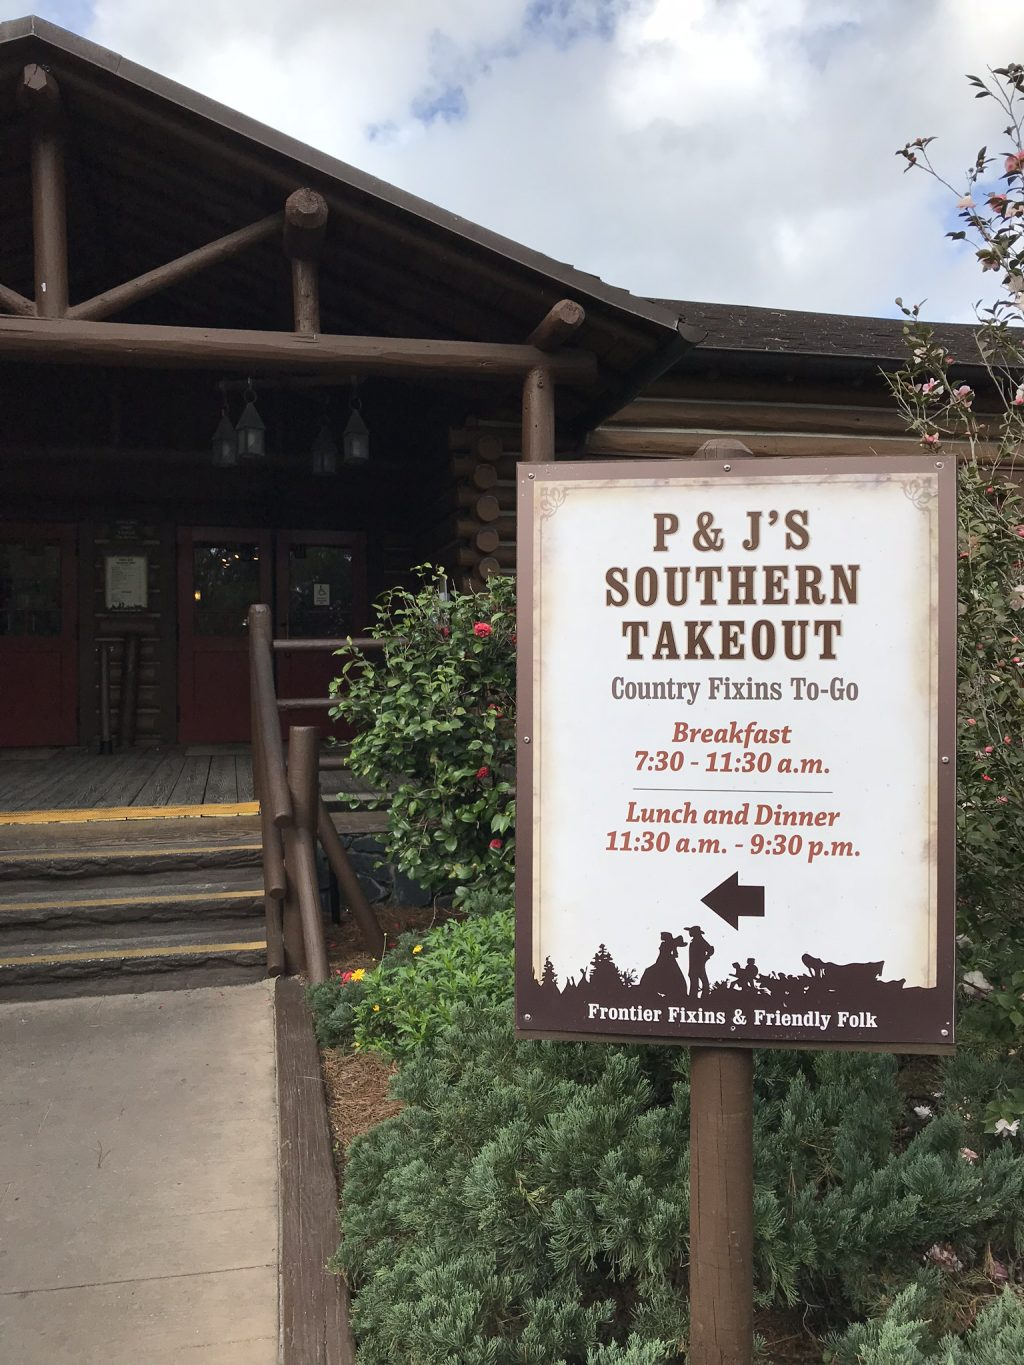 P & J's Southern Takeout Entrance Sign with eating times